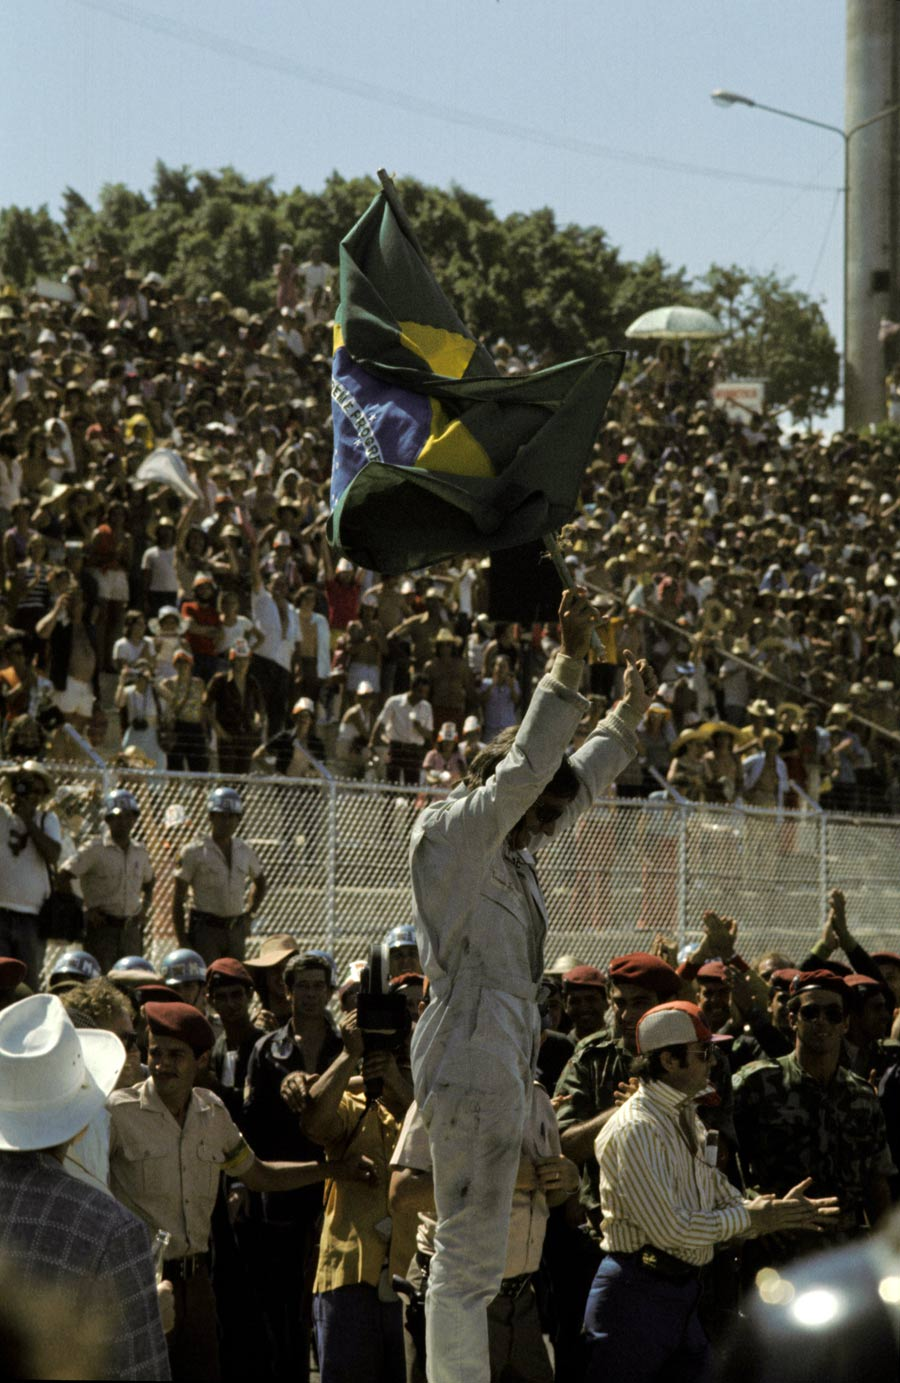 Emerson Fittipaldi celebrates victory on home soil